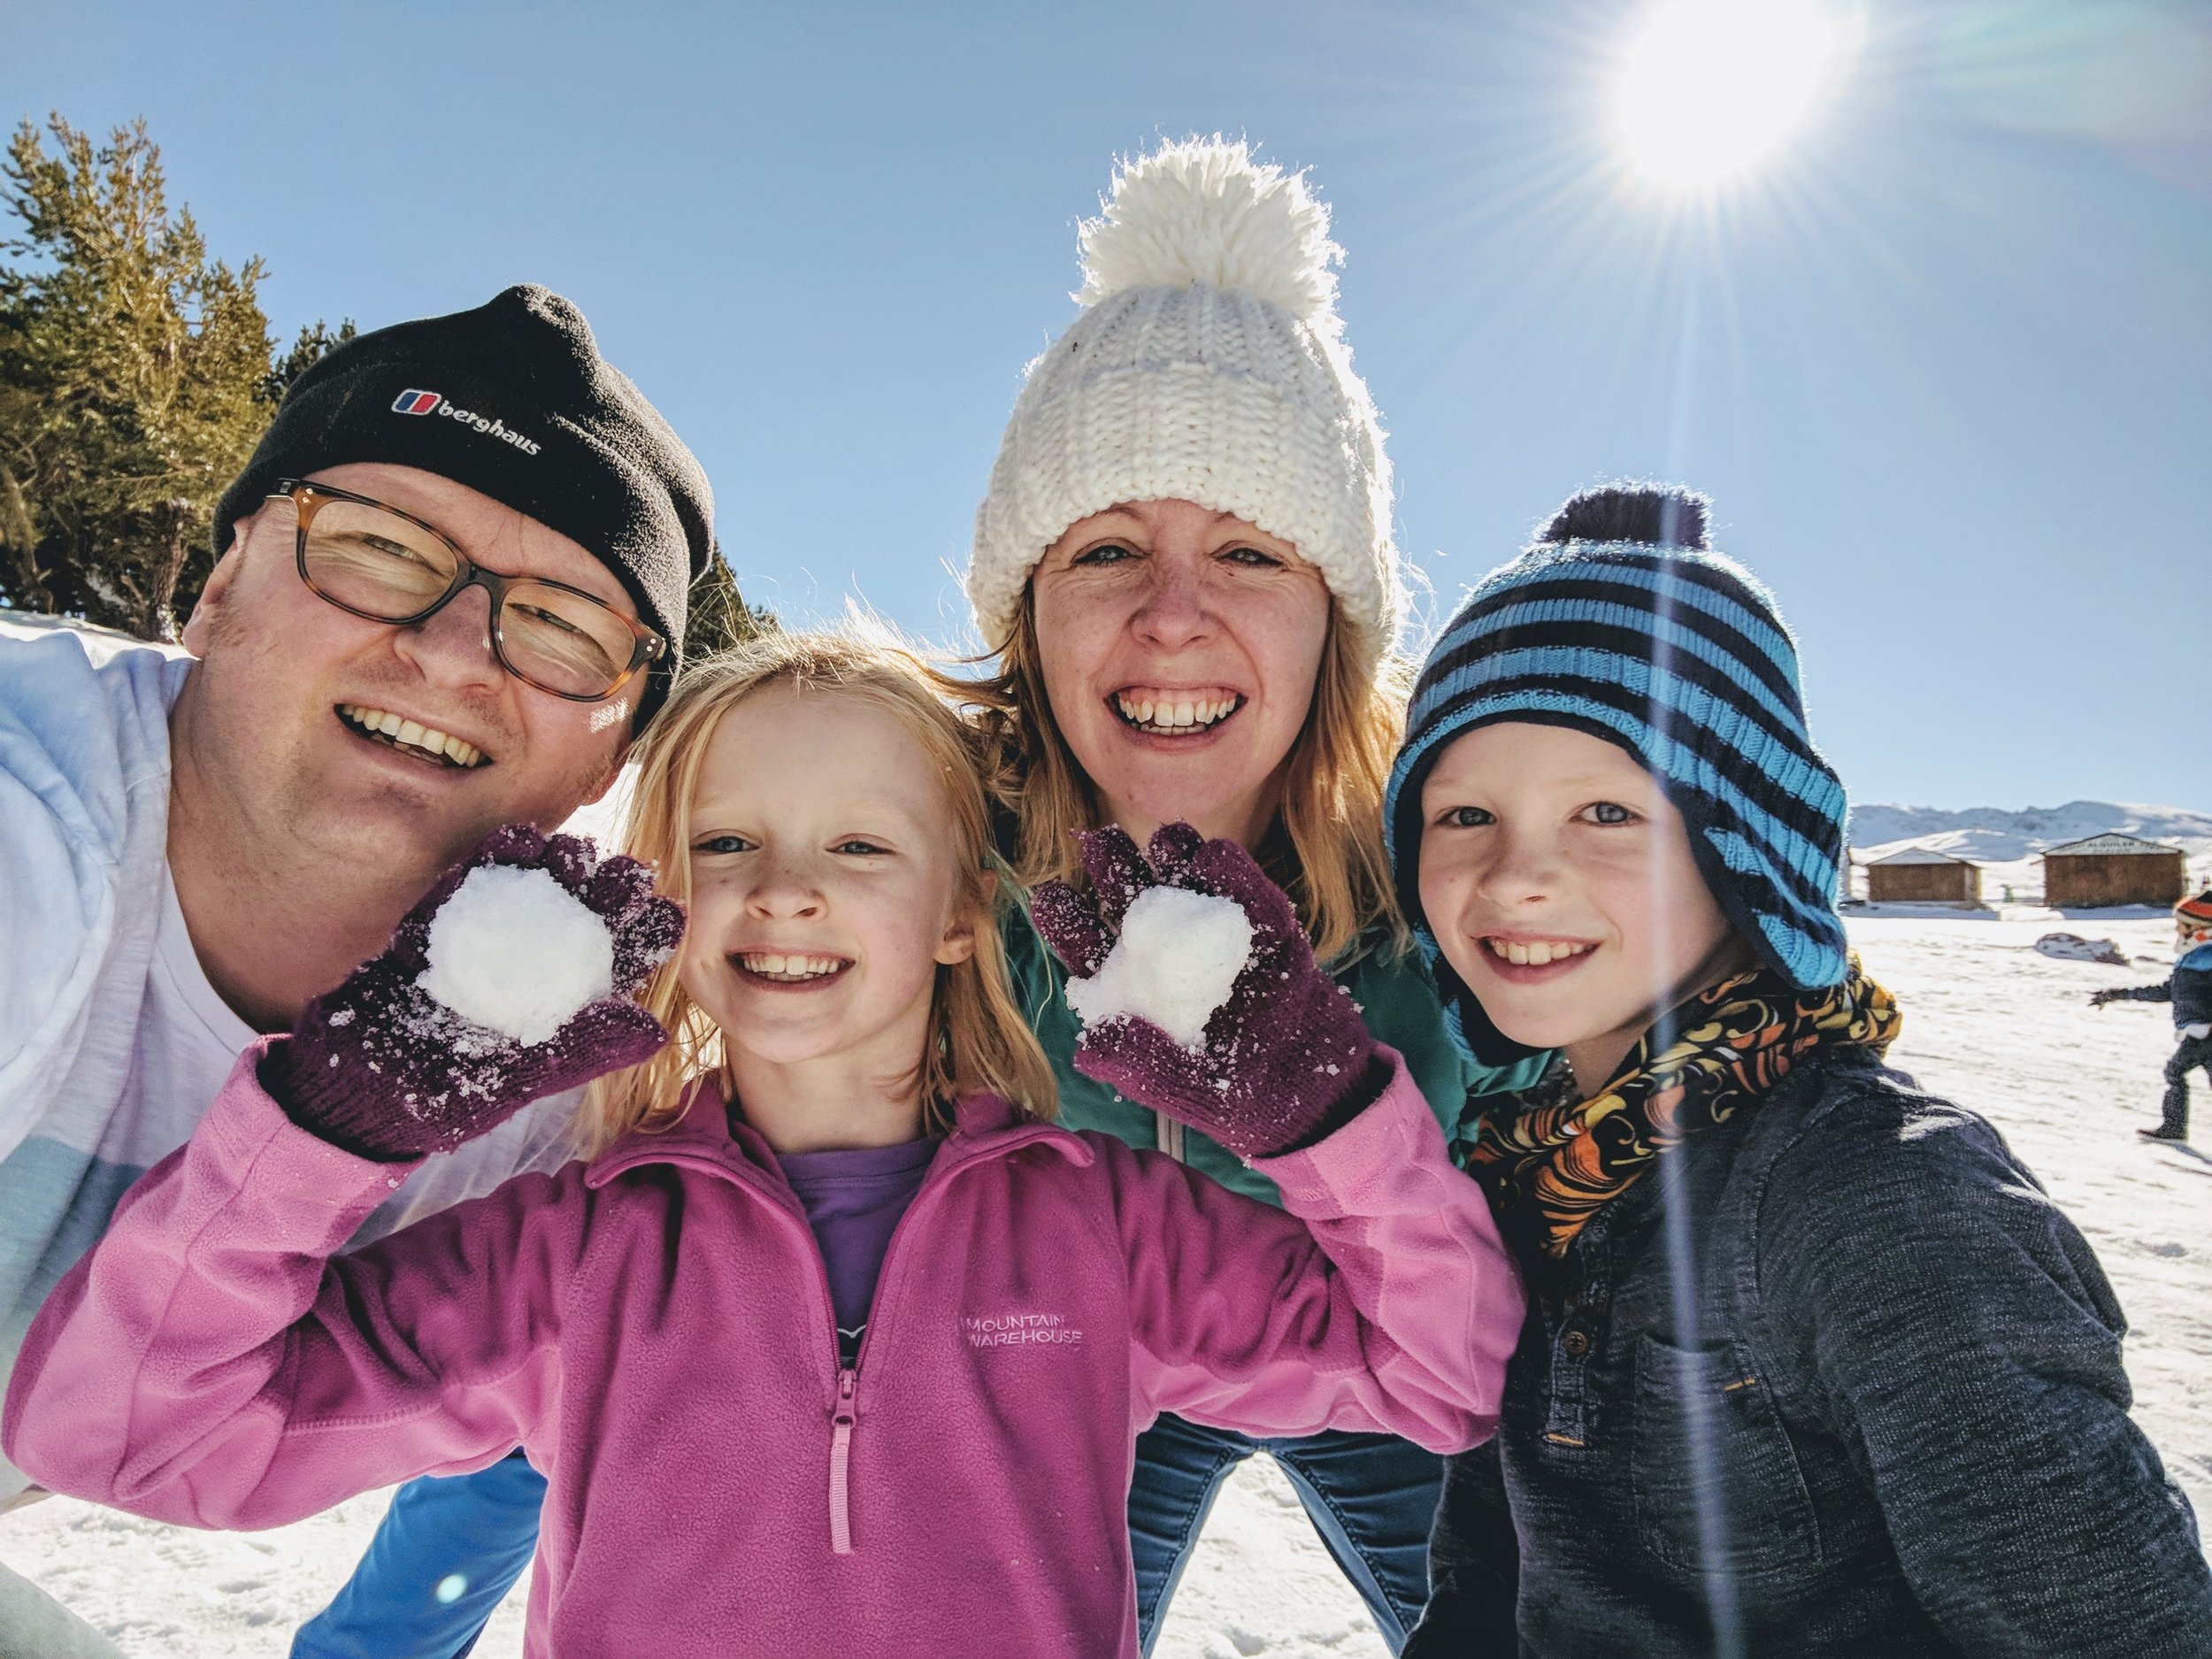 Family Light in snowy Spain. An active, healthy life is an inheritance I want to give my kids.